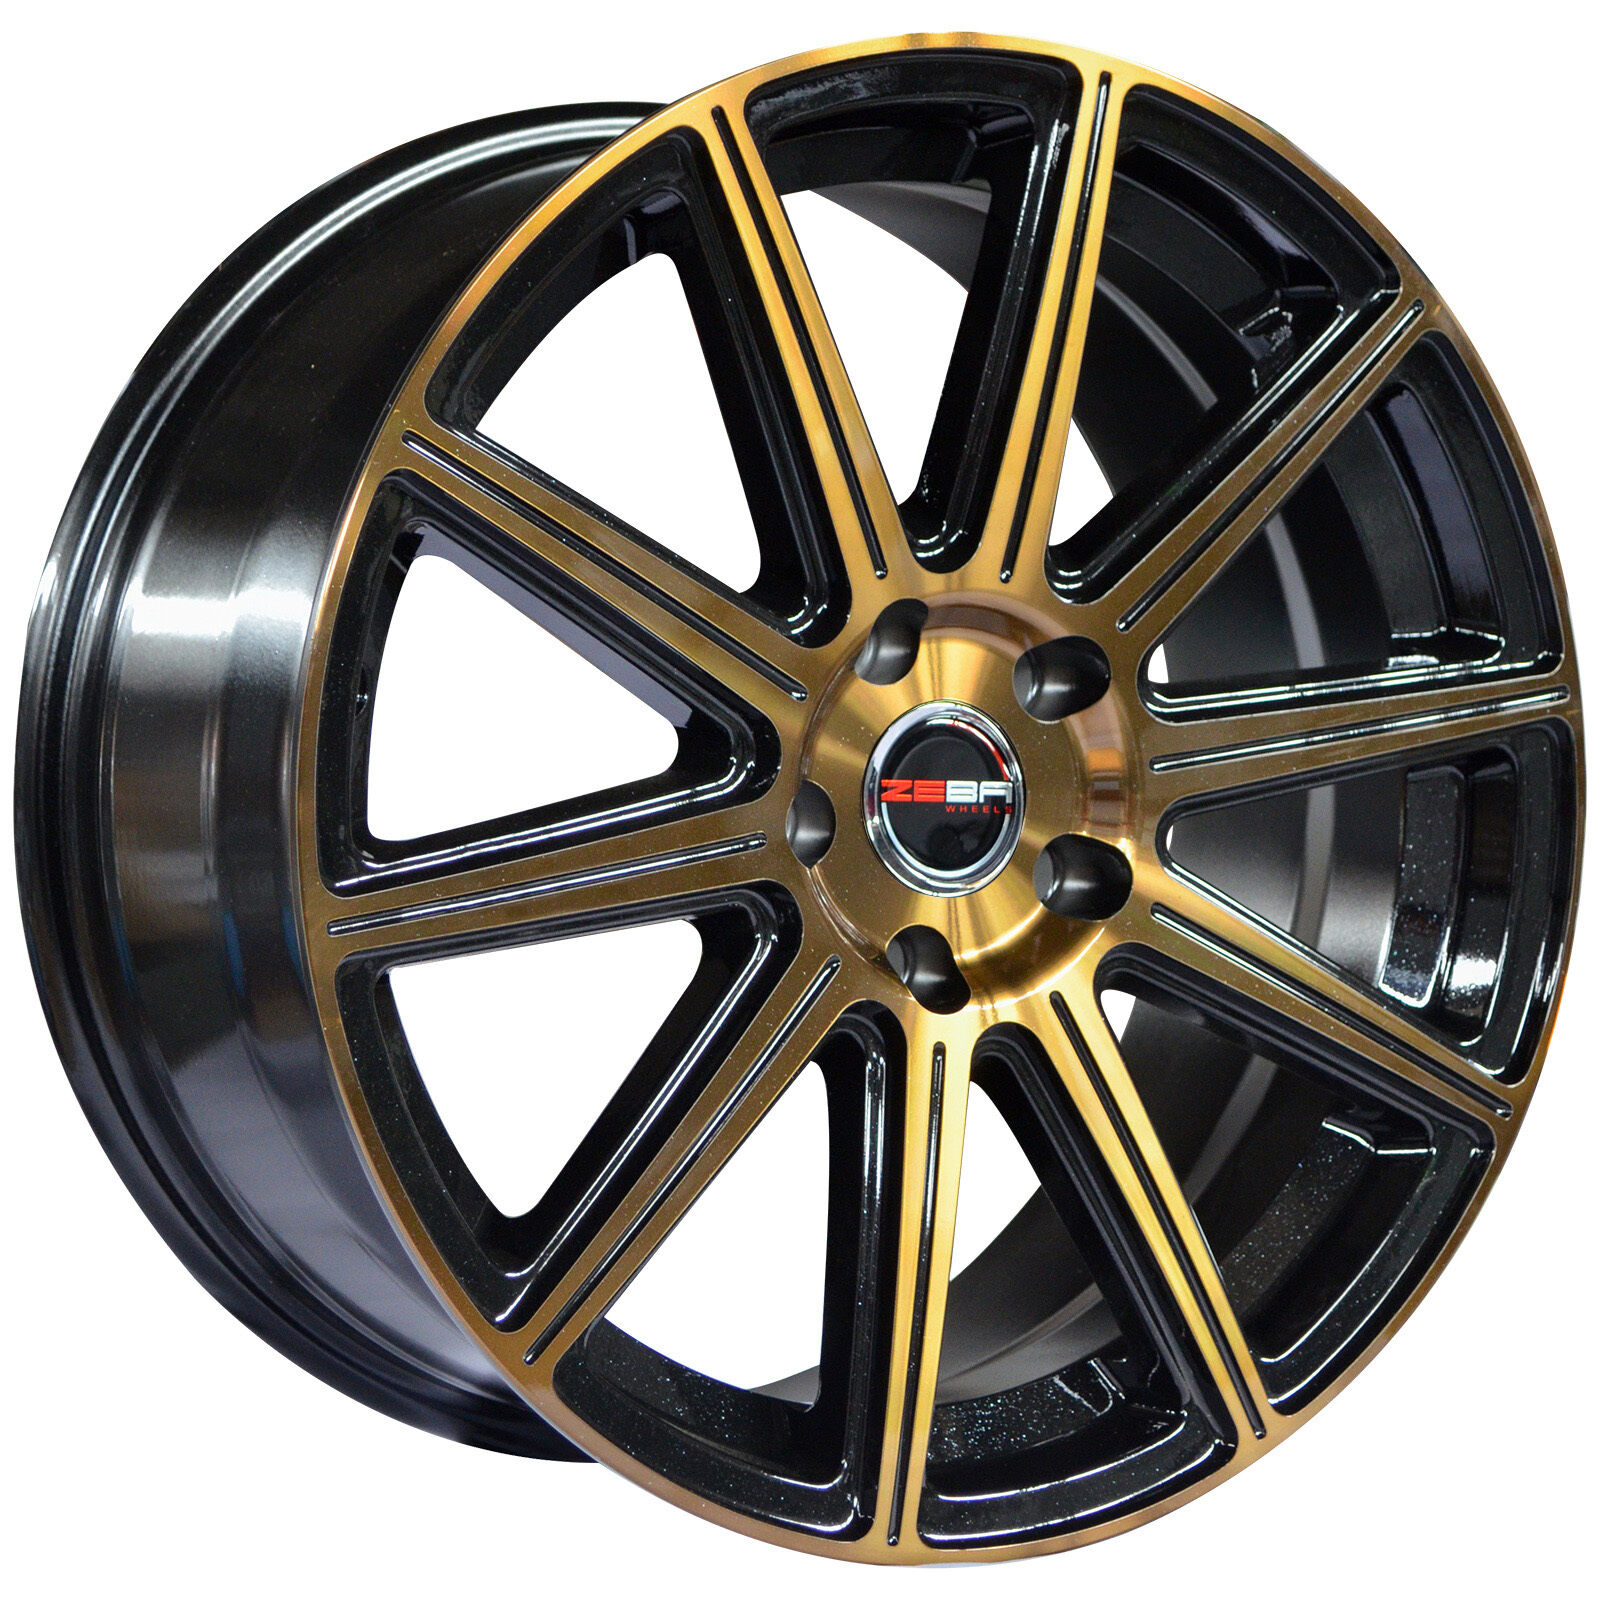 GWG WHEELS Inch Bronze MOD Rims Fits ACURA TSX - Acura tsx rims 18